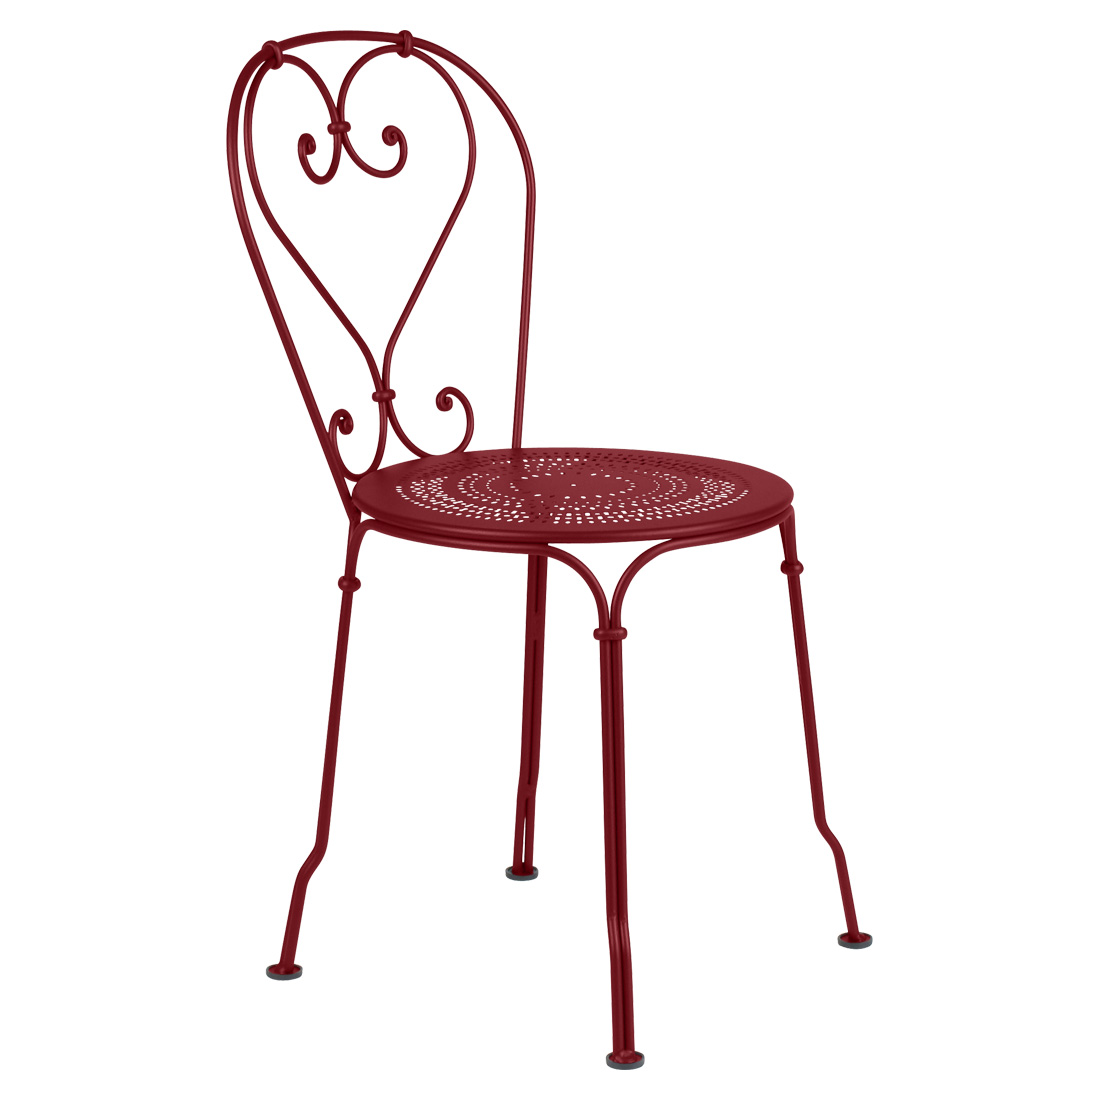 1900 Chair - Chili